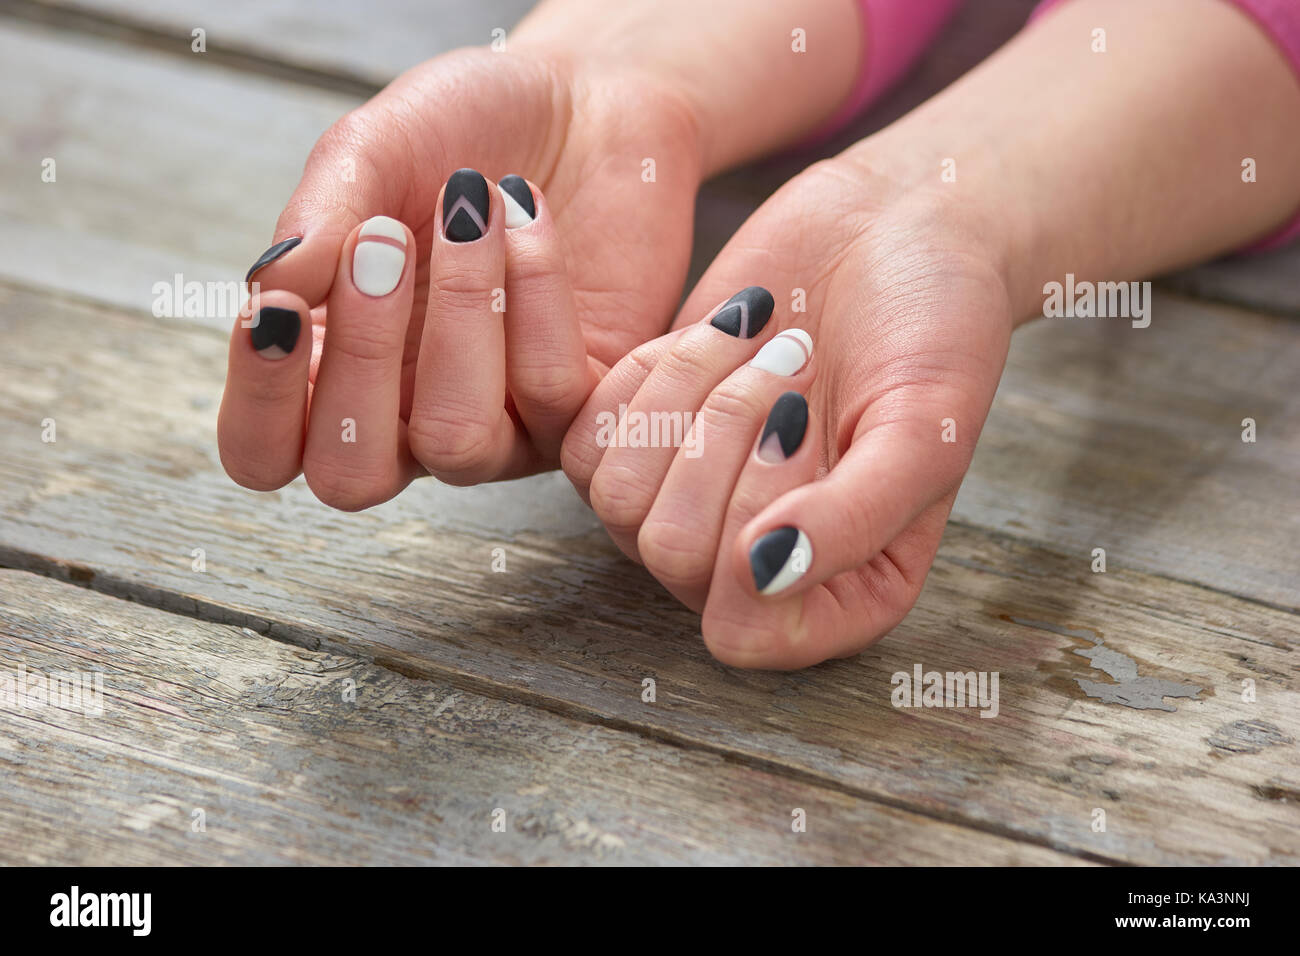 Female Manicured Hands On Wooden Background Woman With Black And White Matte Nails Old Vintage Nail Salon Spa